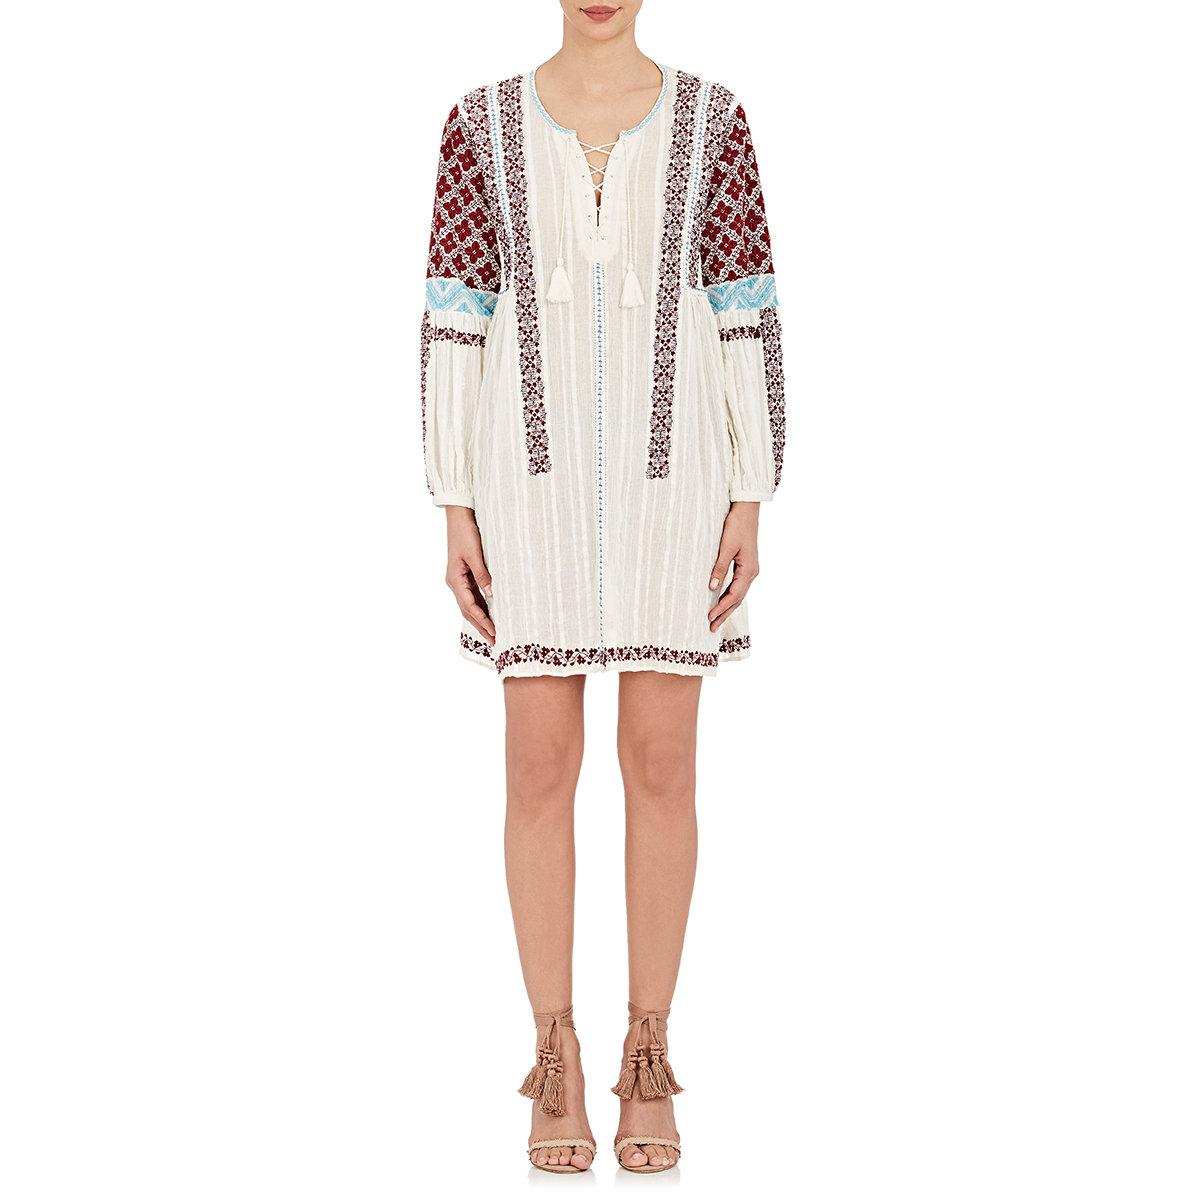 Try our Women's Cotton Jersey Tunic Dress Cover-up at Lands' End. Everything we sell is Guaranteed. Period.® Since